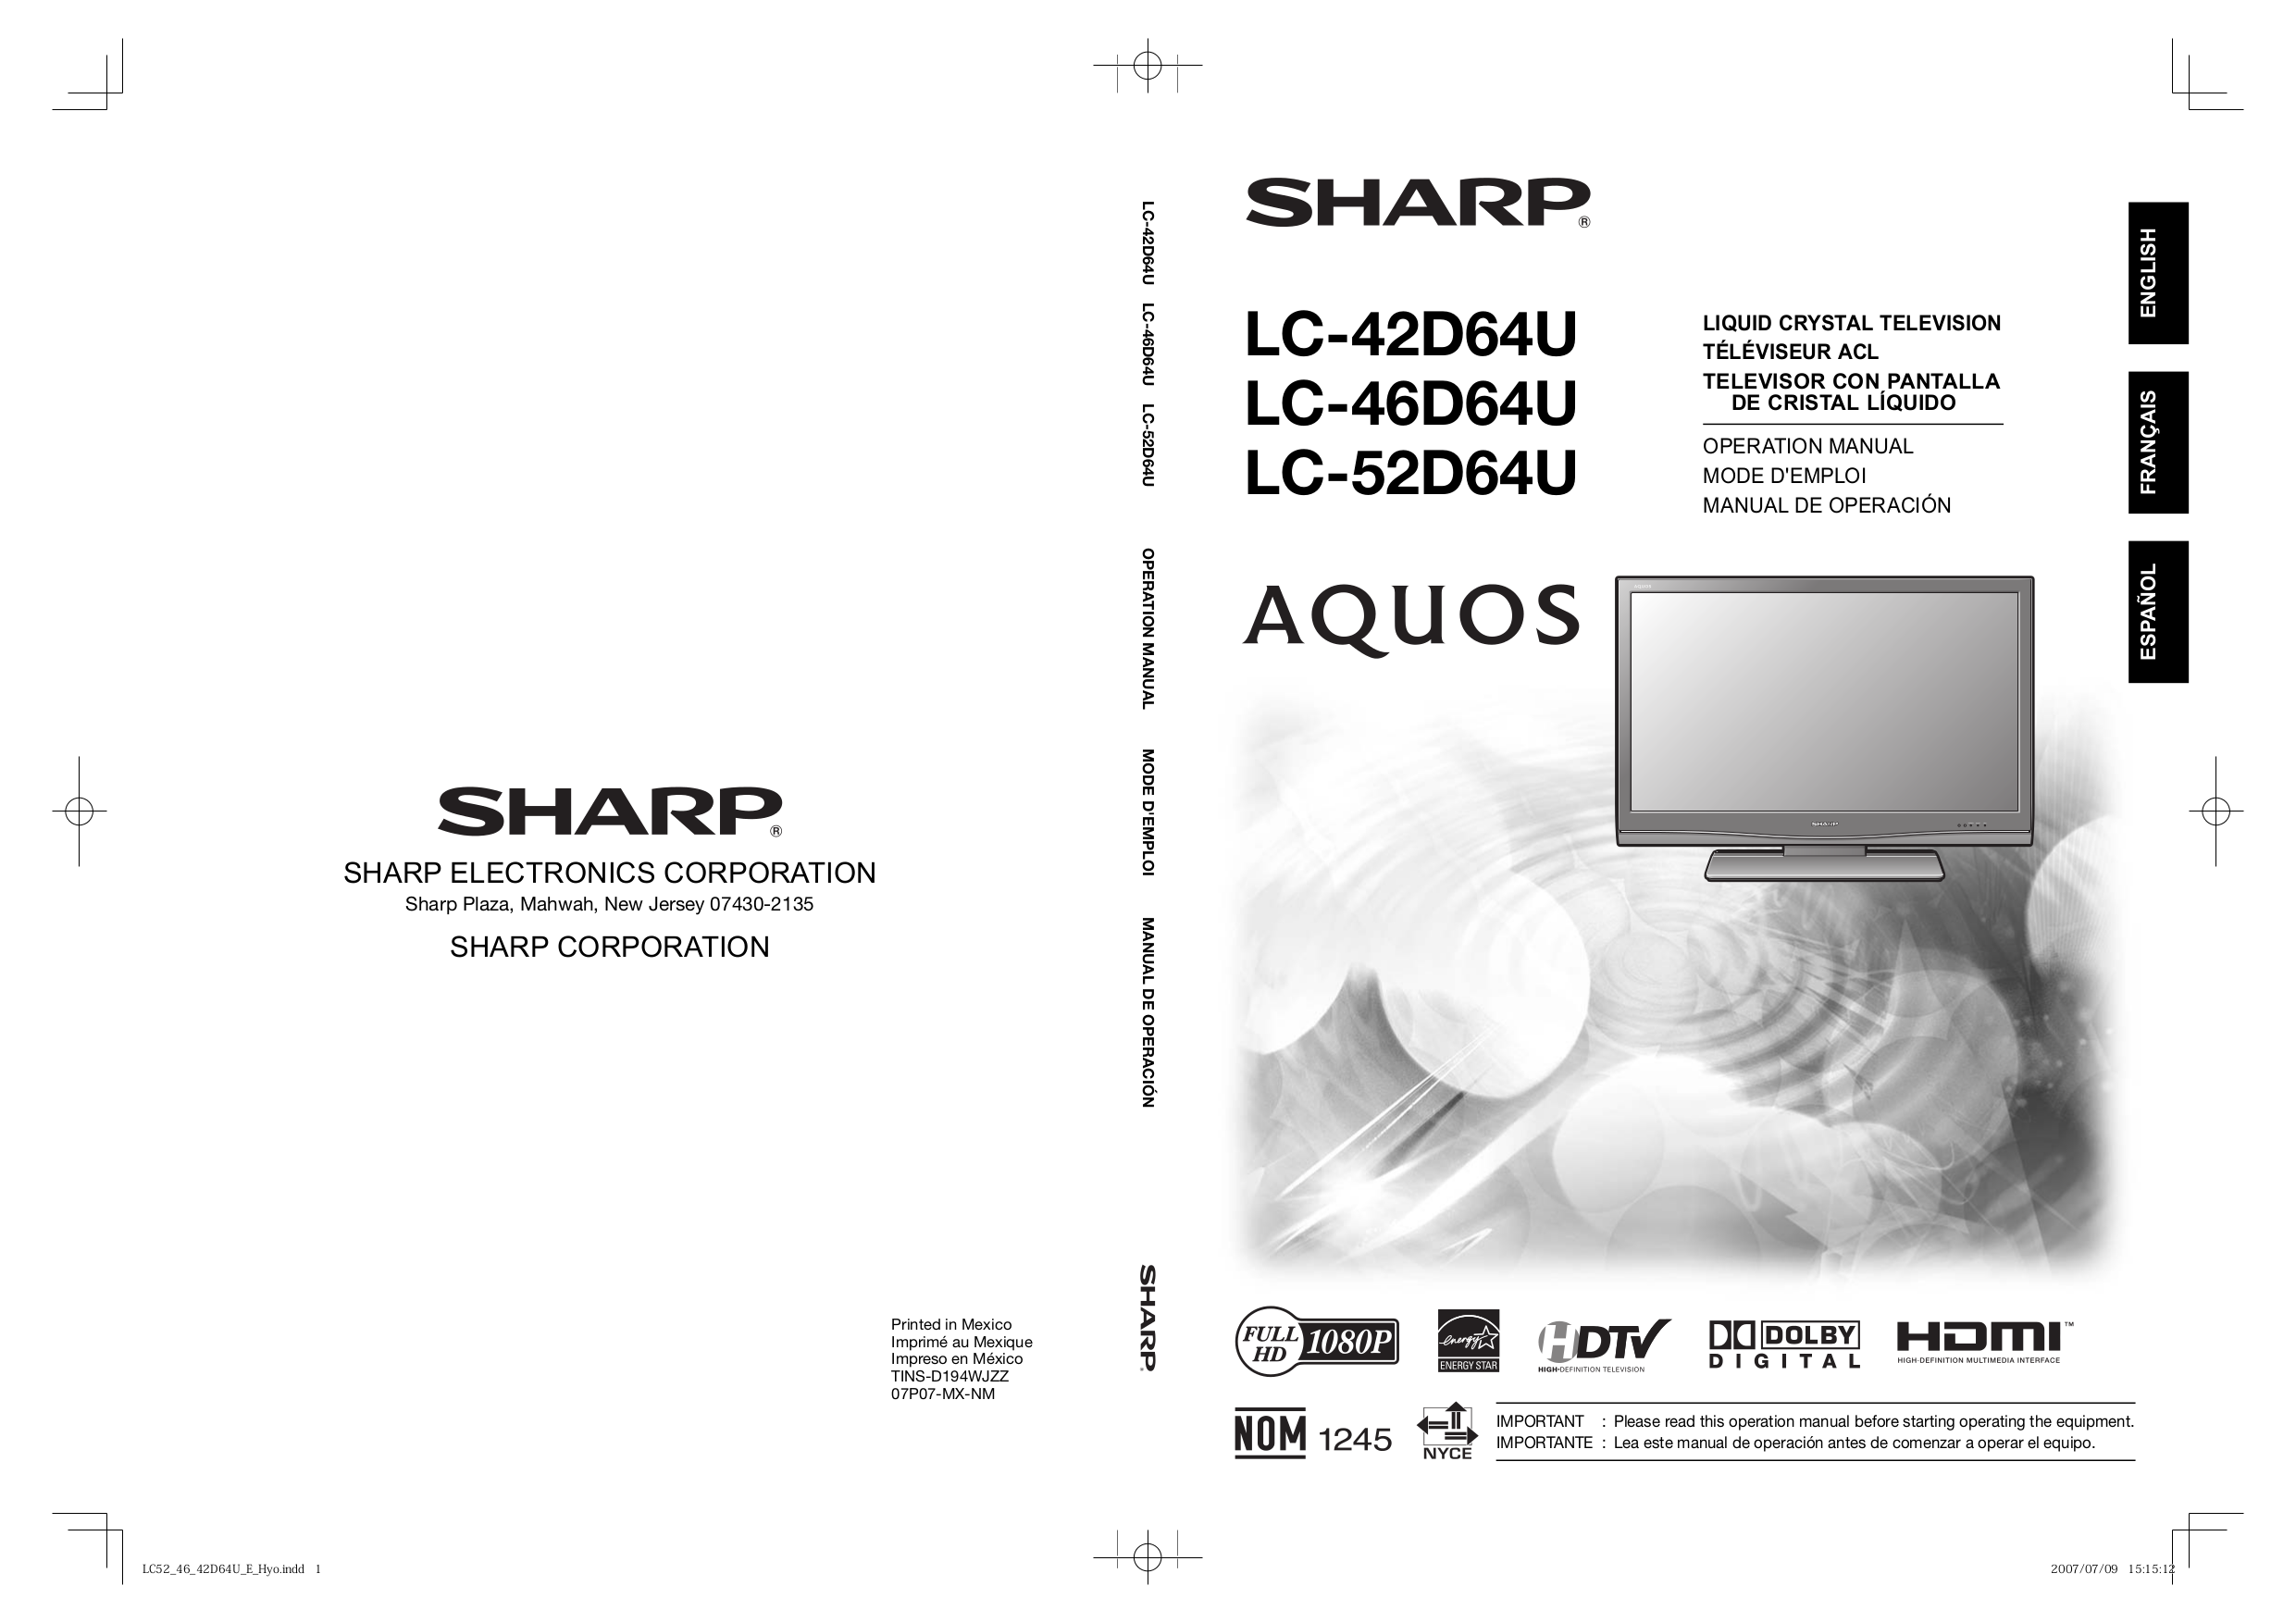 download free pdf for sharp aquos lc 46d64u tv manual rh umlib com sharp tv lc-46d64u manual sharp aquos lc46d64u manual